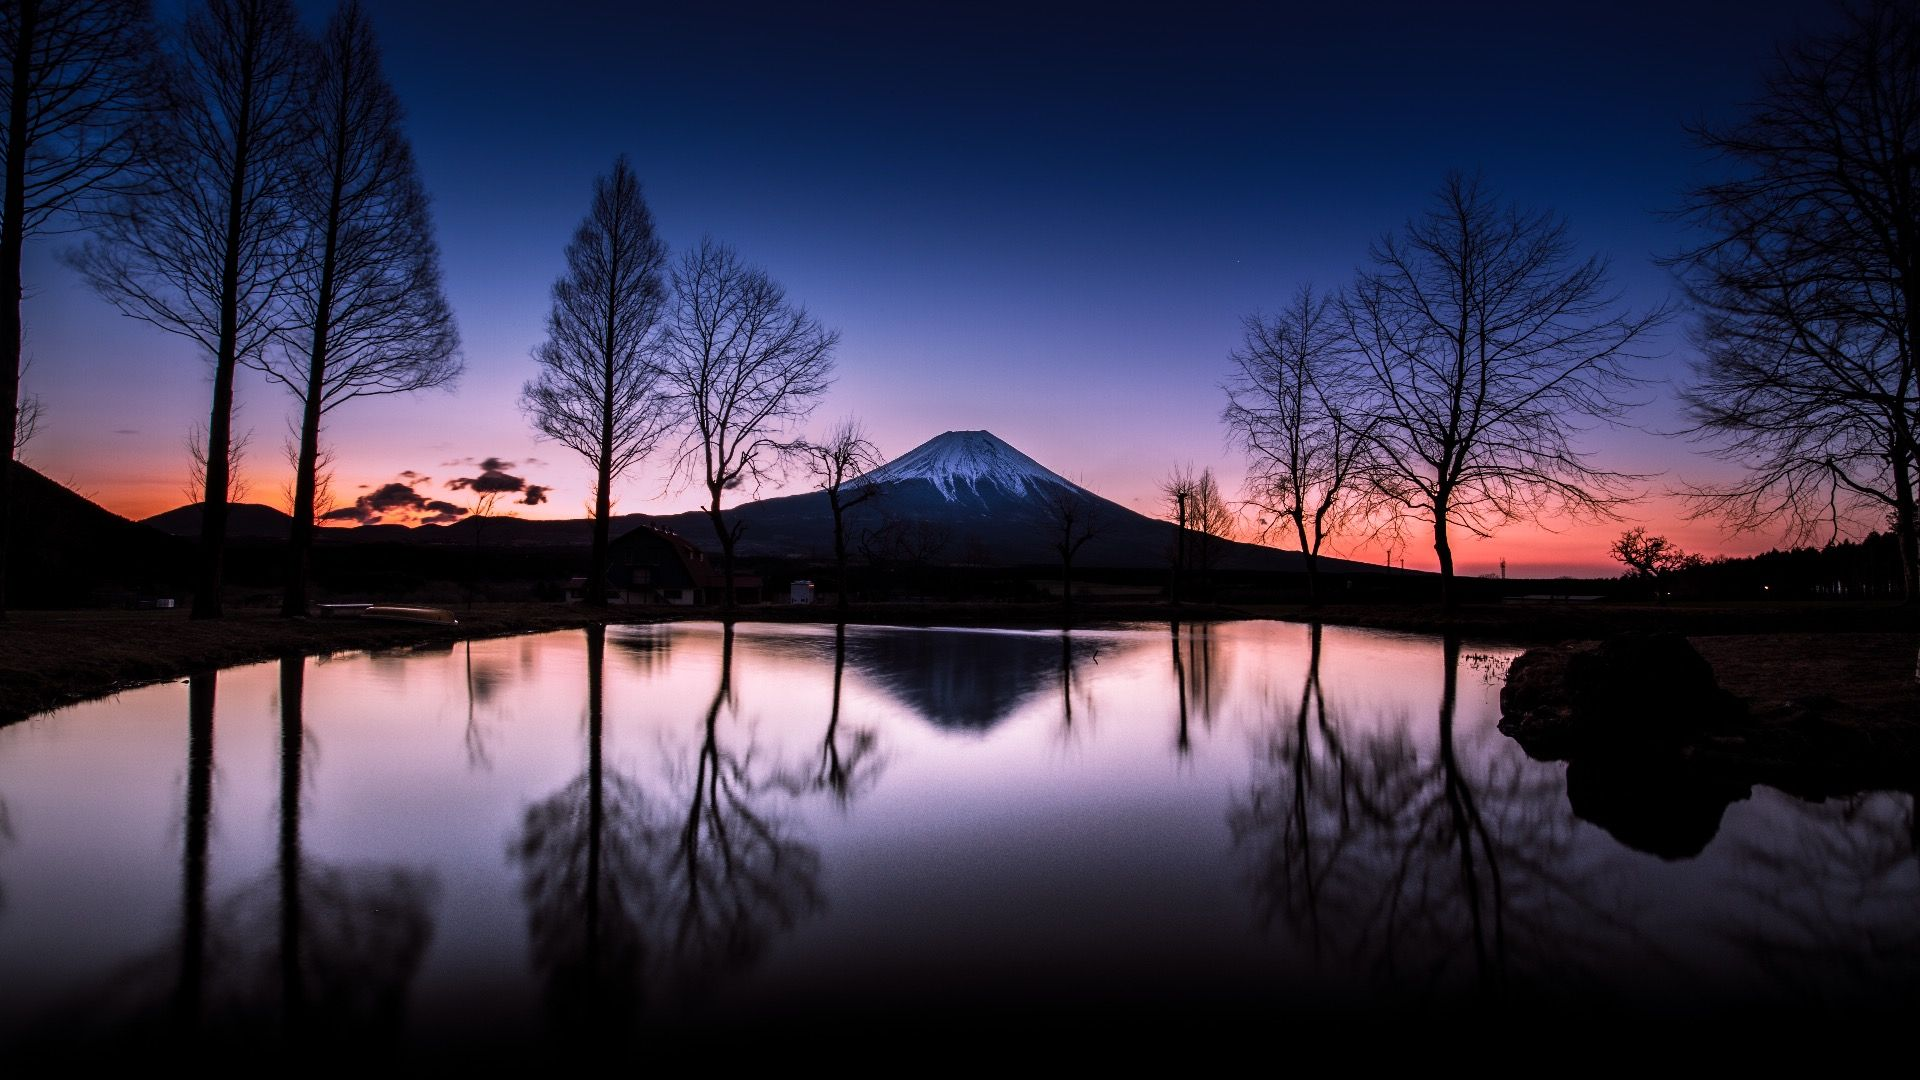 Sleeping Giants, Weeping Plums: Japanese Landscape Photography